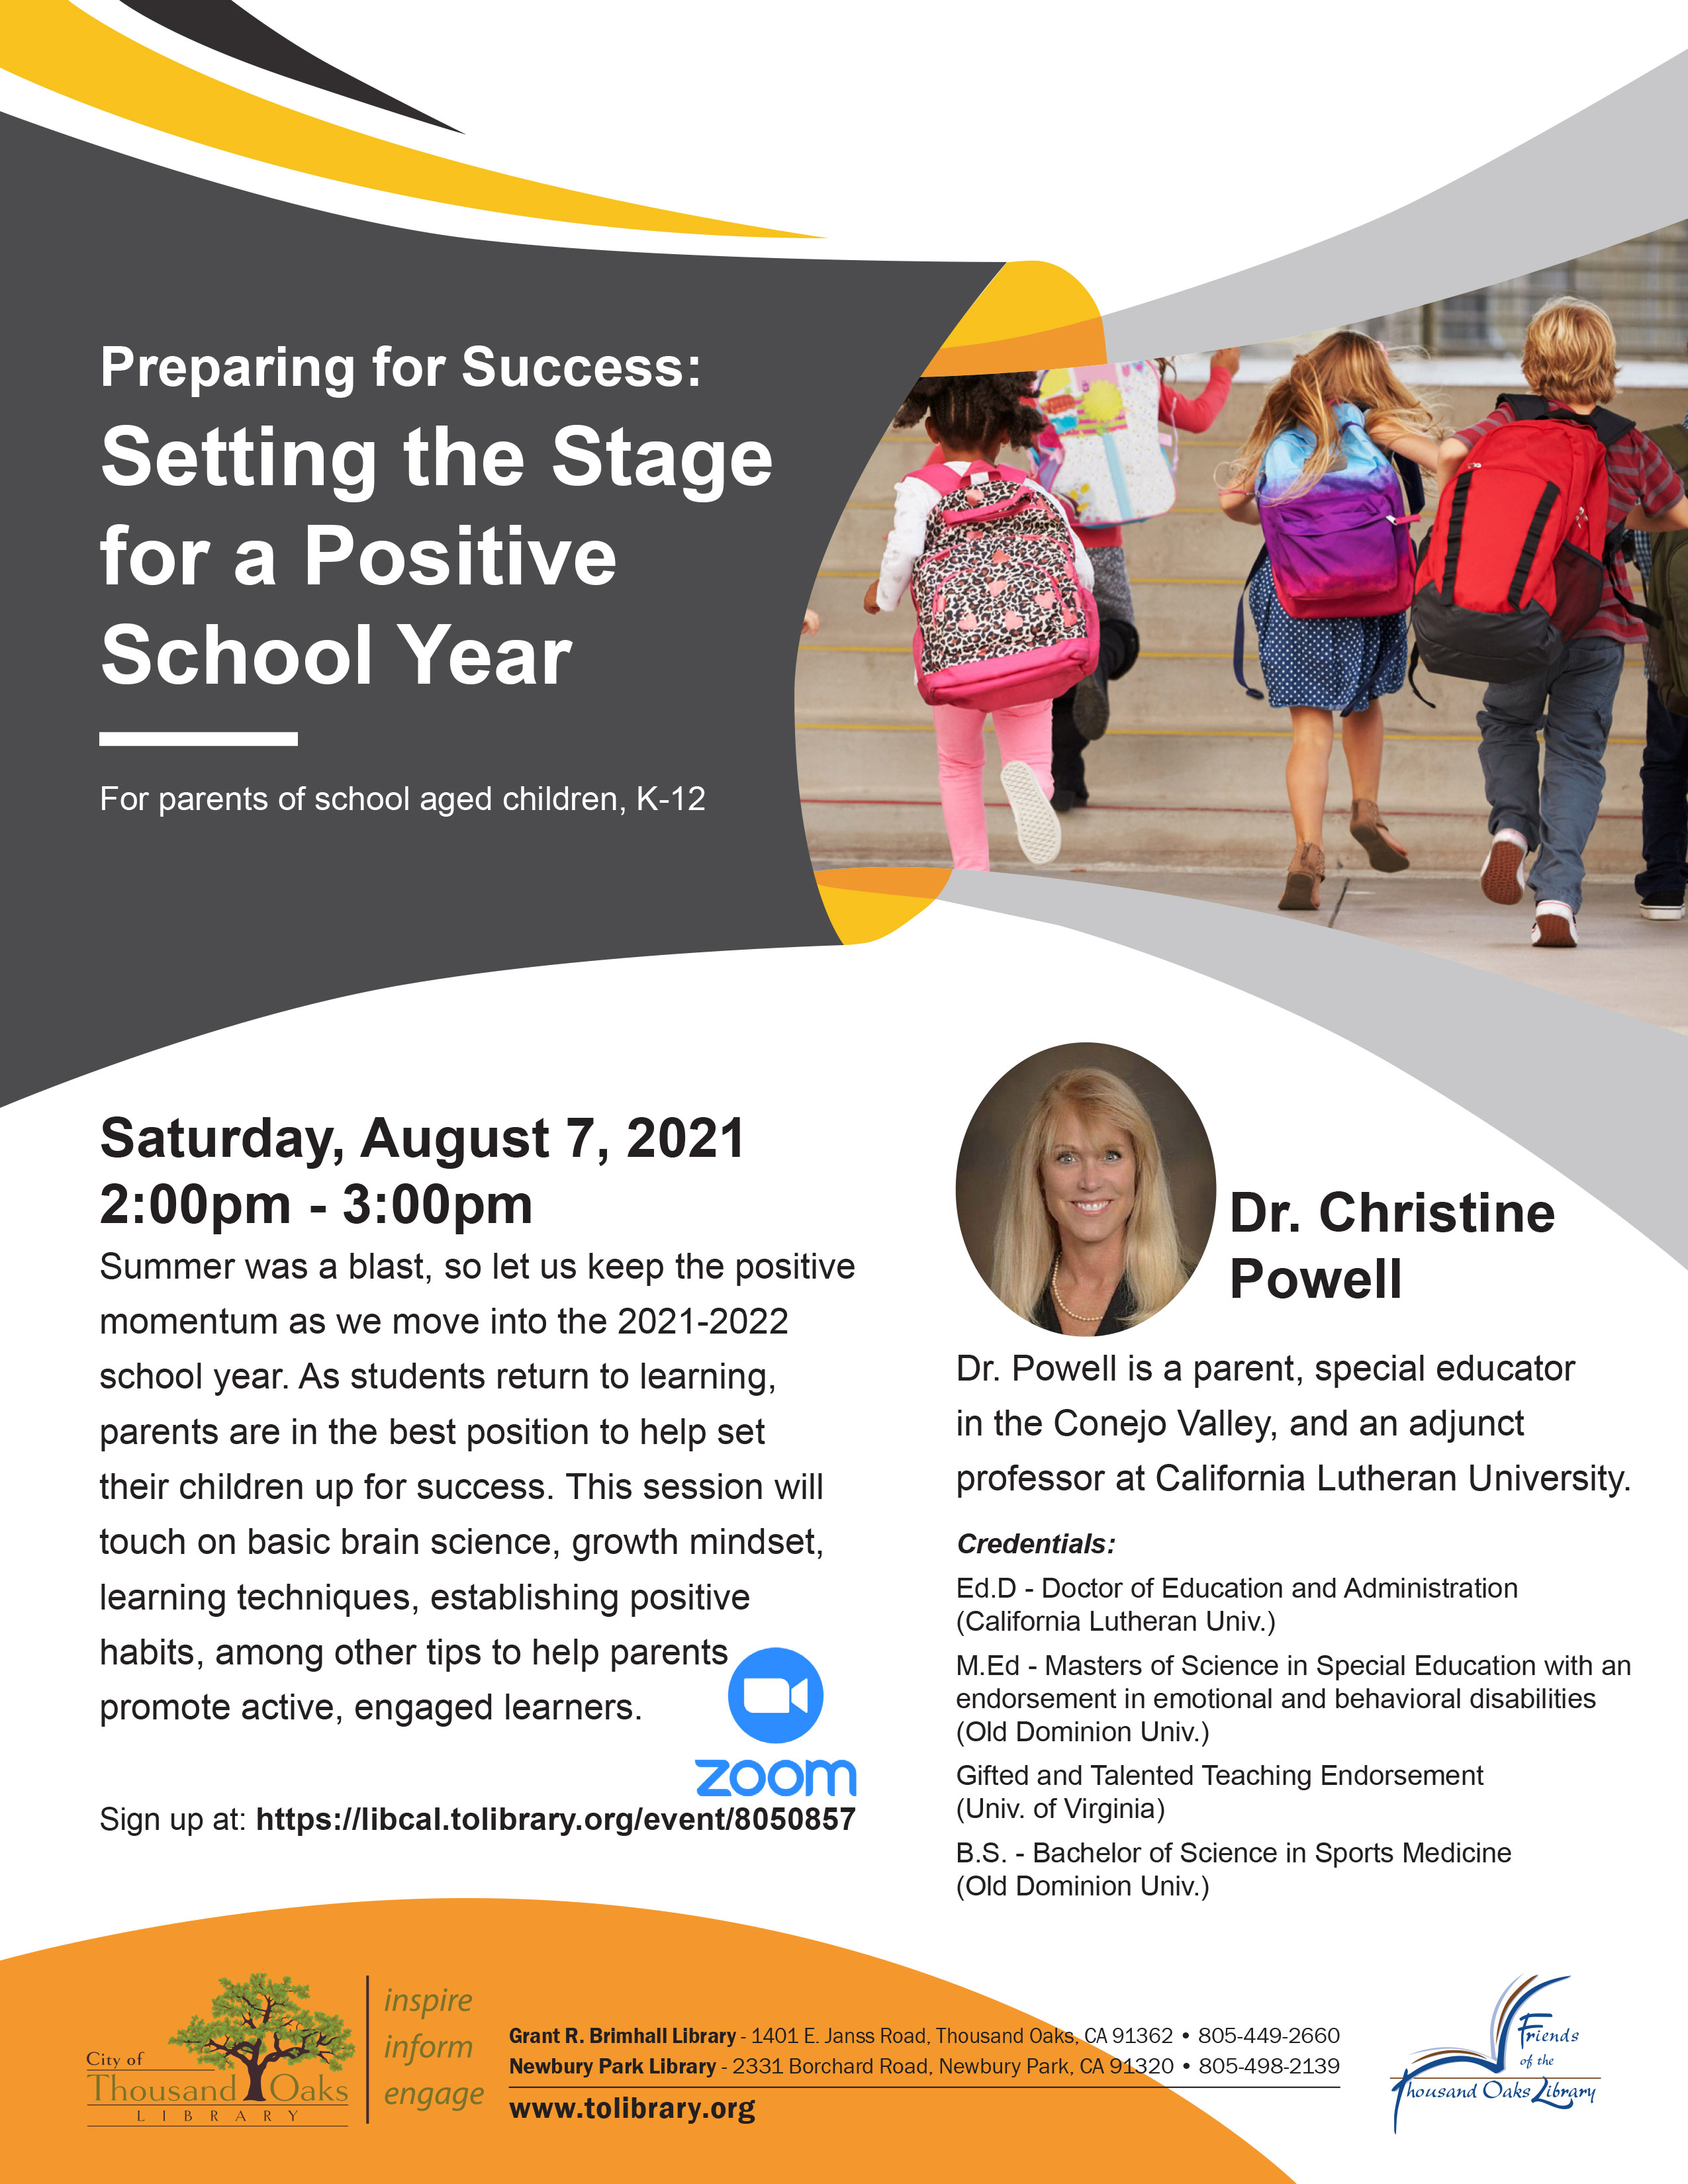 Preparing For Success- Setting The Stage For a Positive School Year